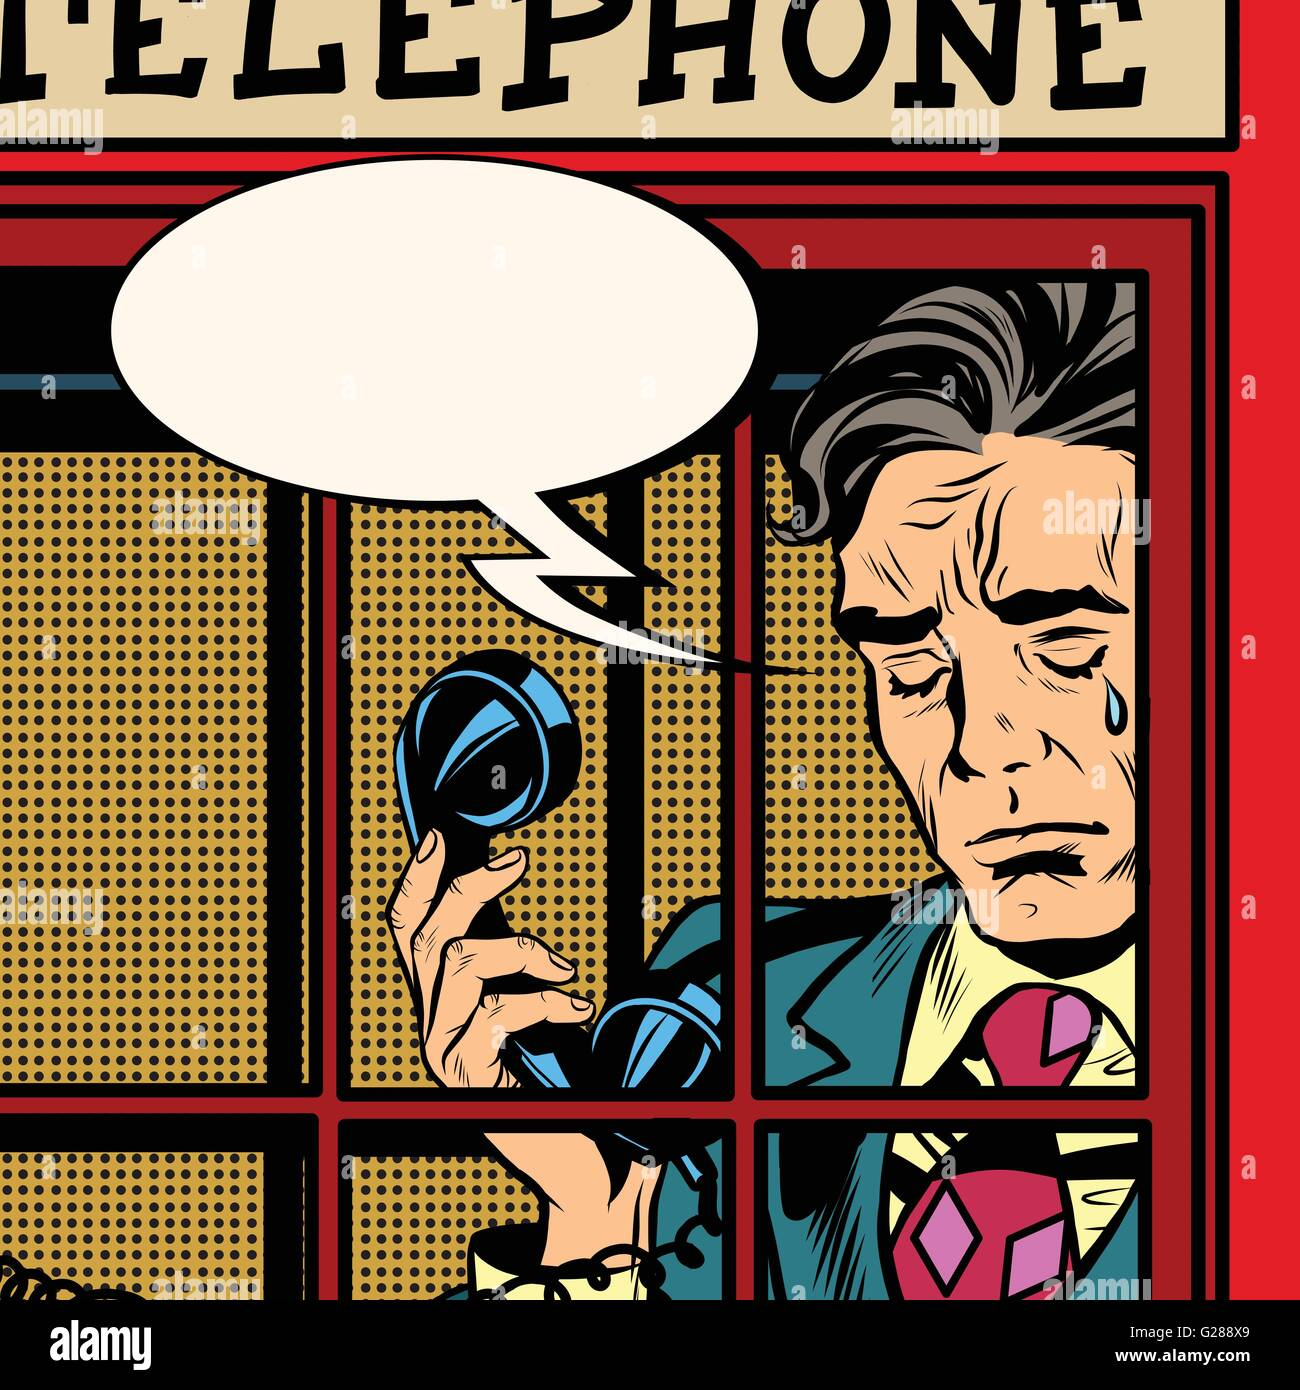 Retro man crying in the red phone booth - Stock Vector